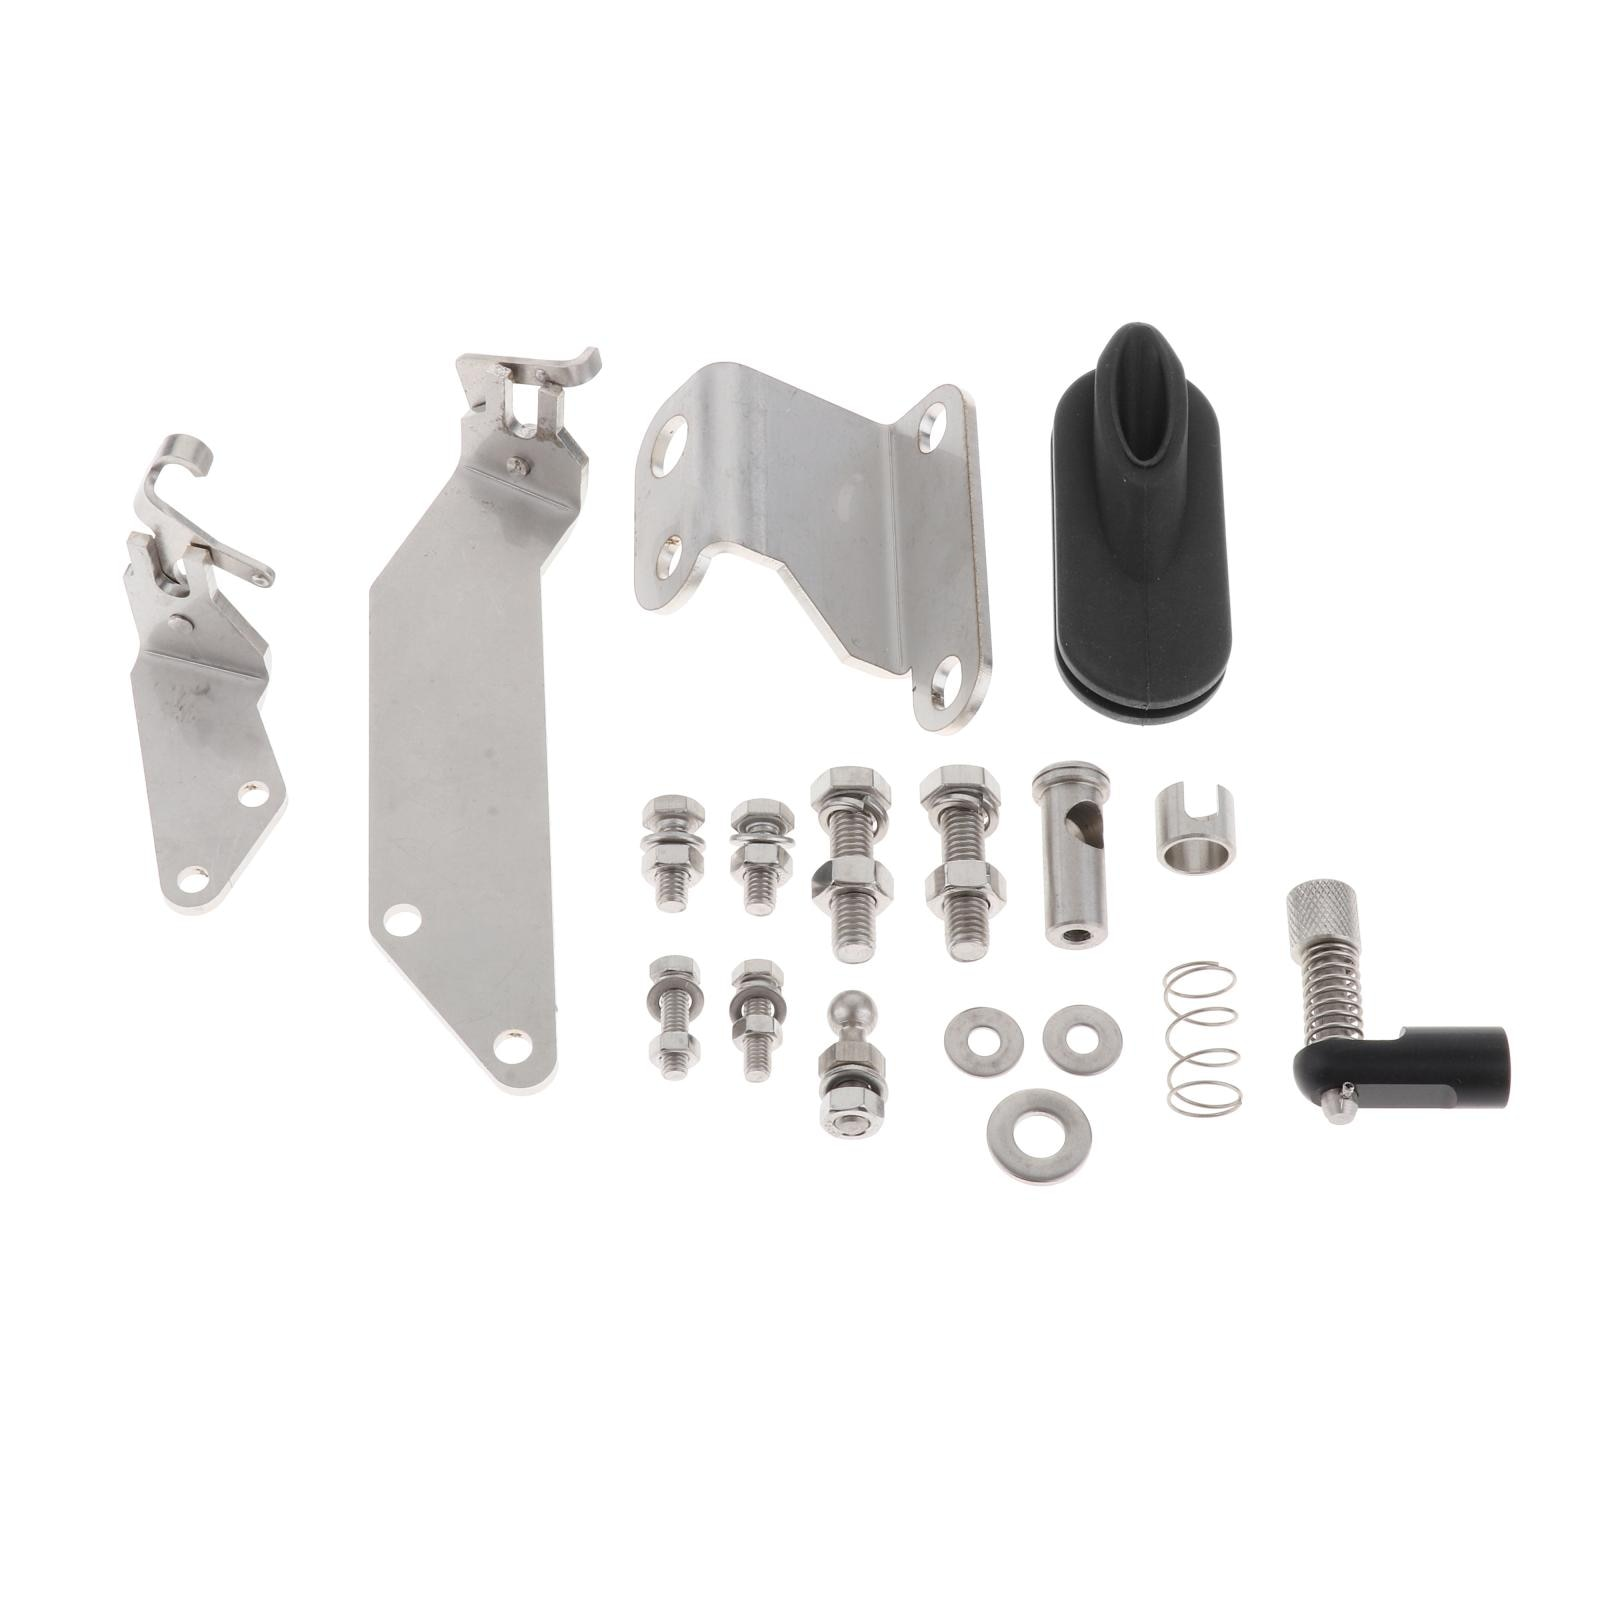 Remote Control Attachment Assy 398838801M 398-83880-1 for Tohatsu Outboard Motor 9.9HP 15HP 18HP, enlarge